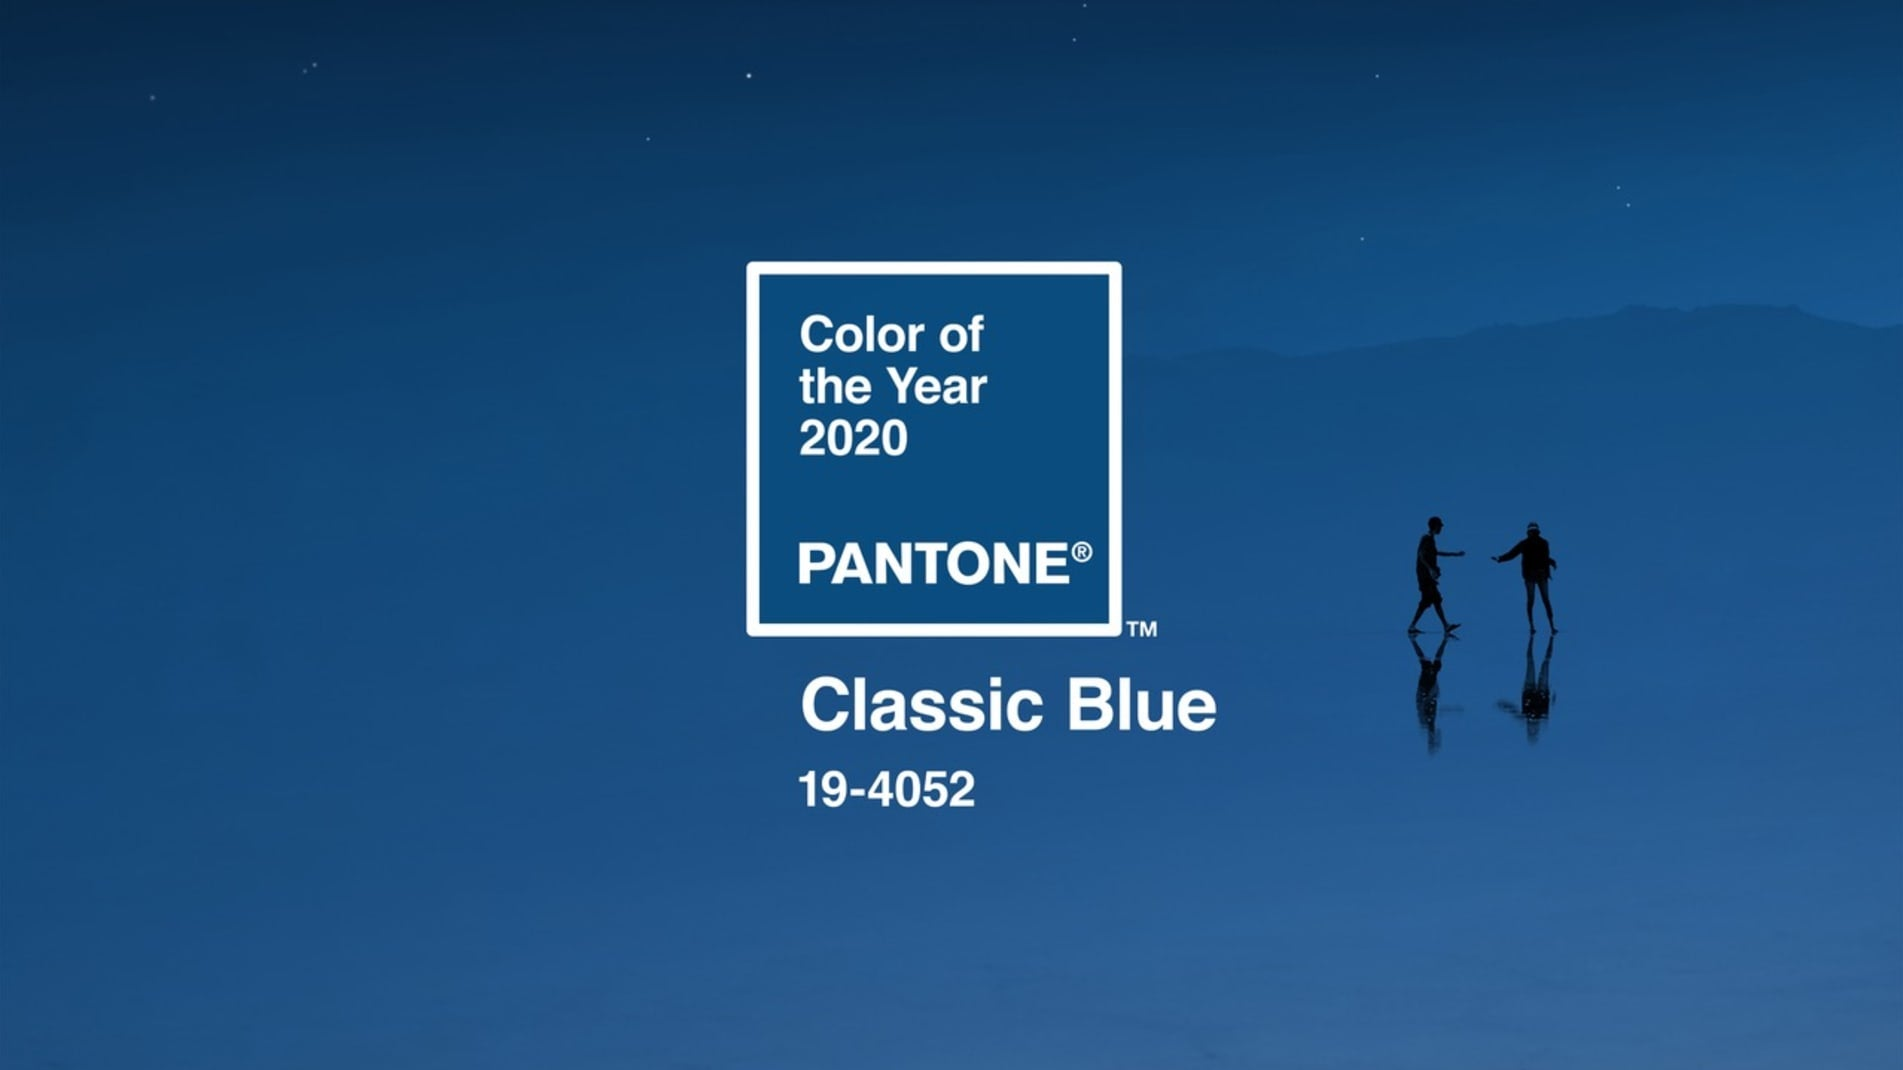 2020 Color of the Year by Pantone